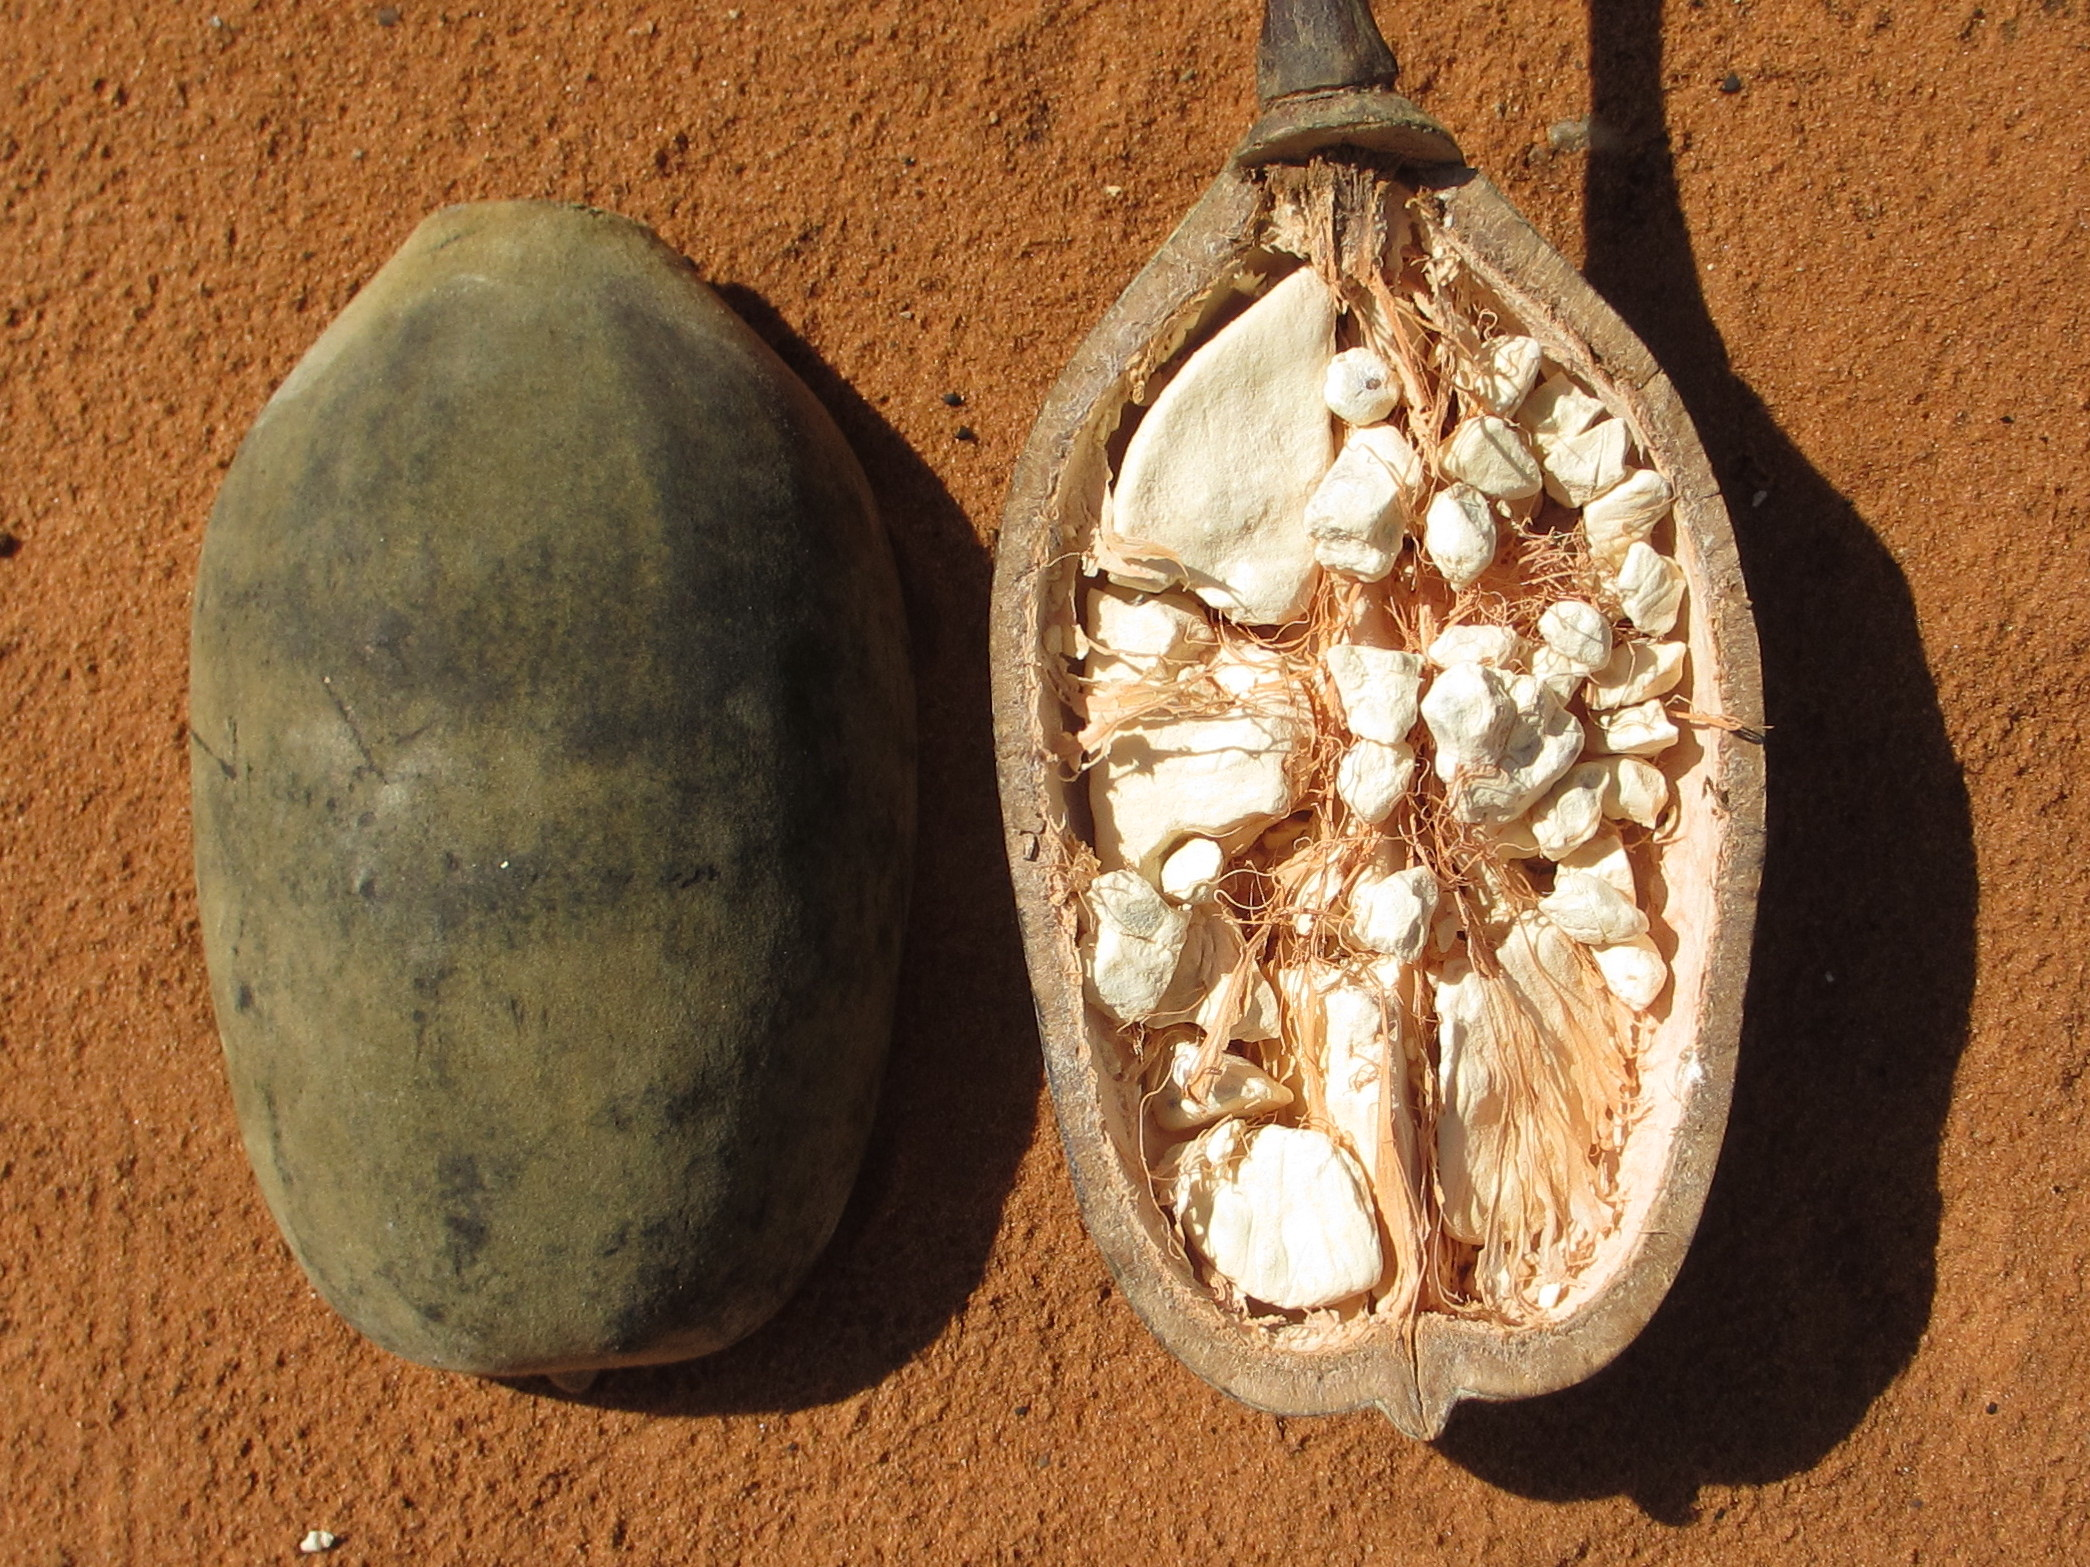 This baobab fruit was bought in the market of Pemba town, northern Mozambique. Photo taken by Ton Rulkins on May 10, 2013